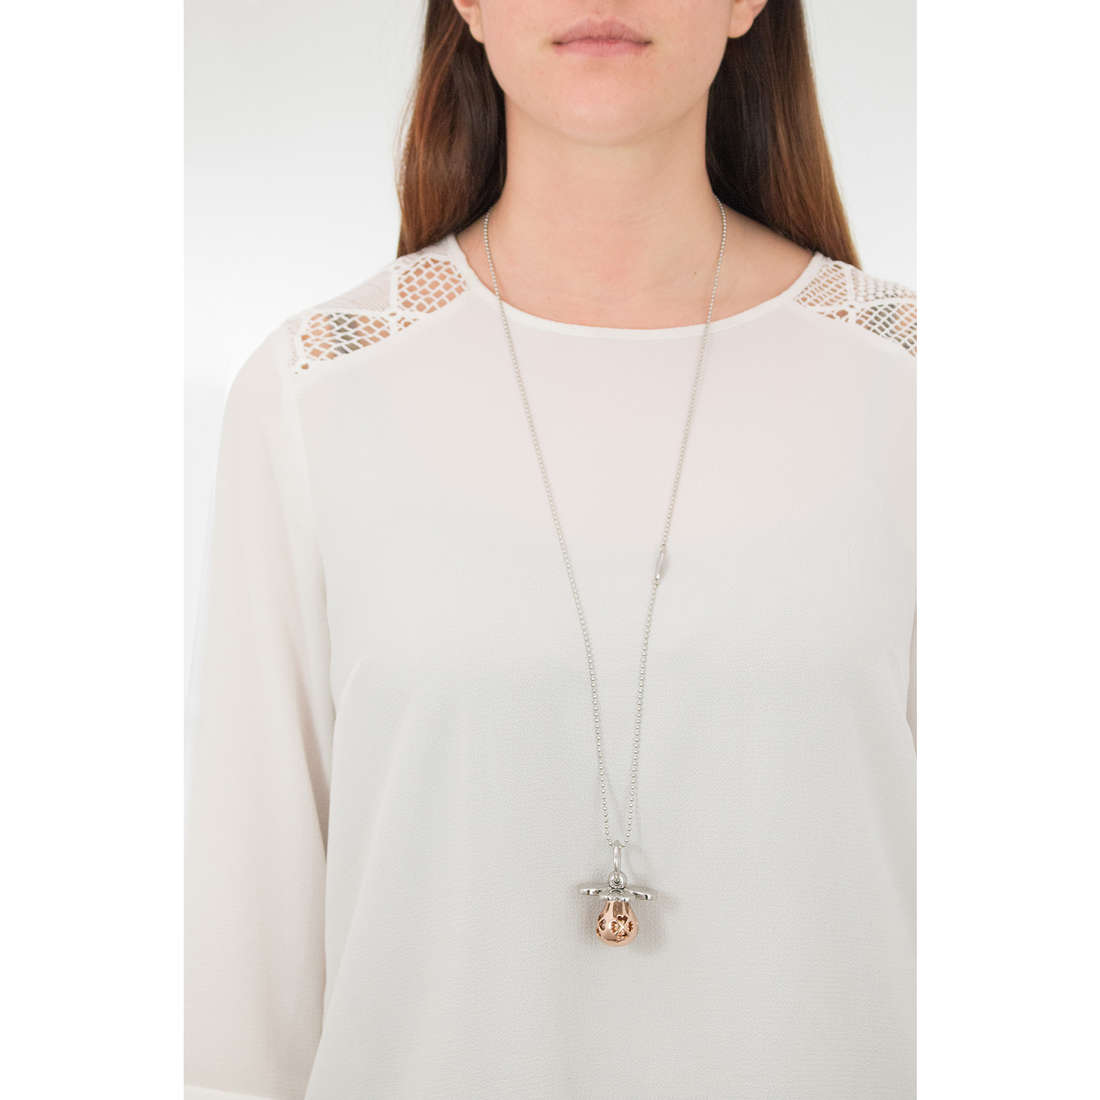 Luca Barra necklaces Babe woman LBCK1047 indosso